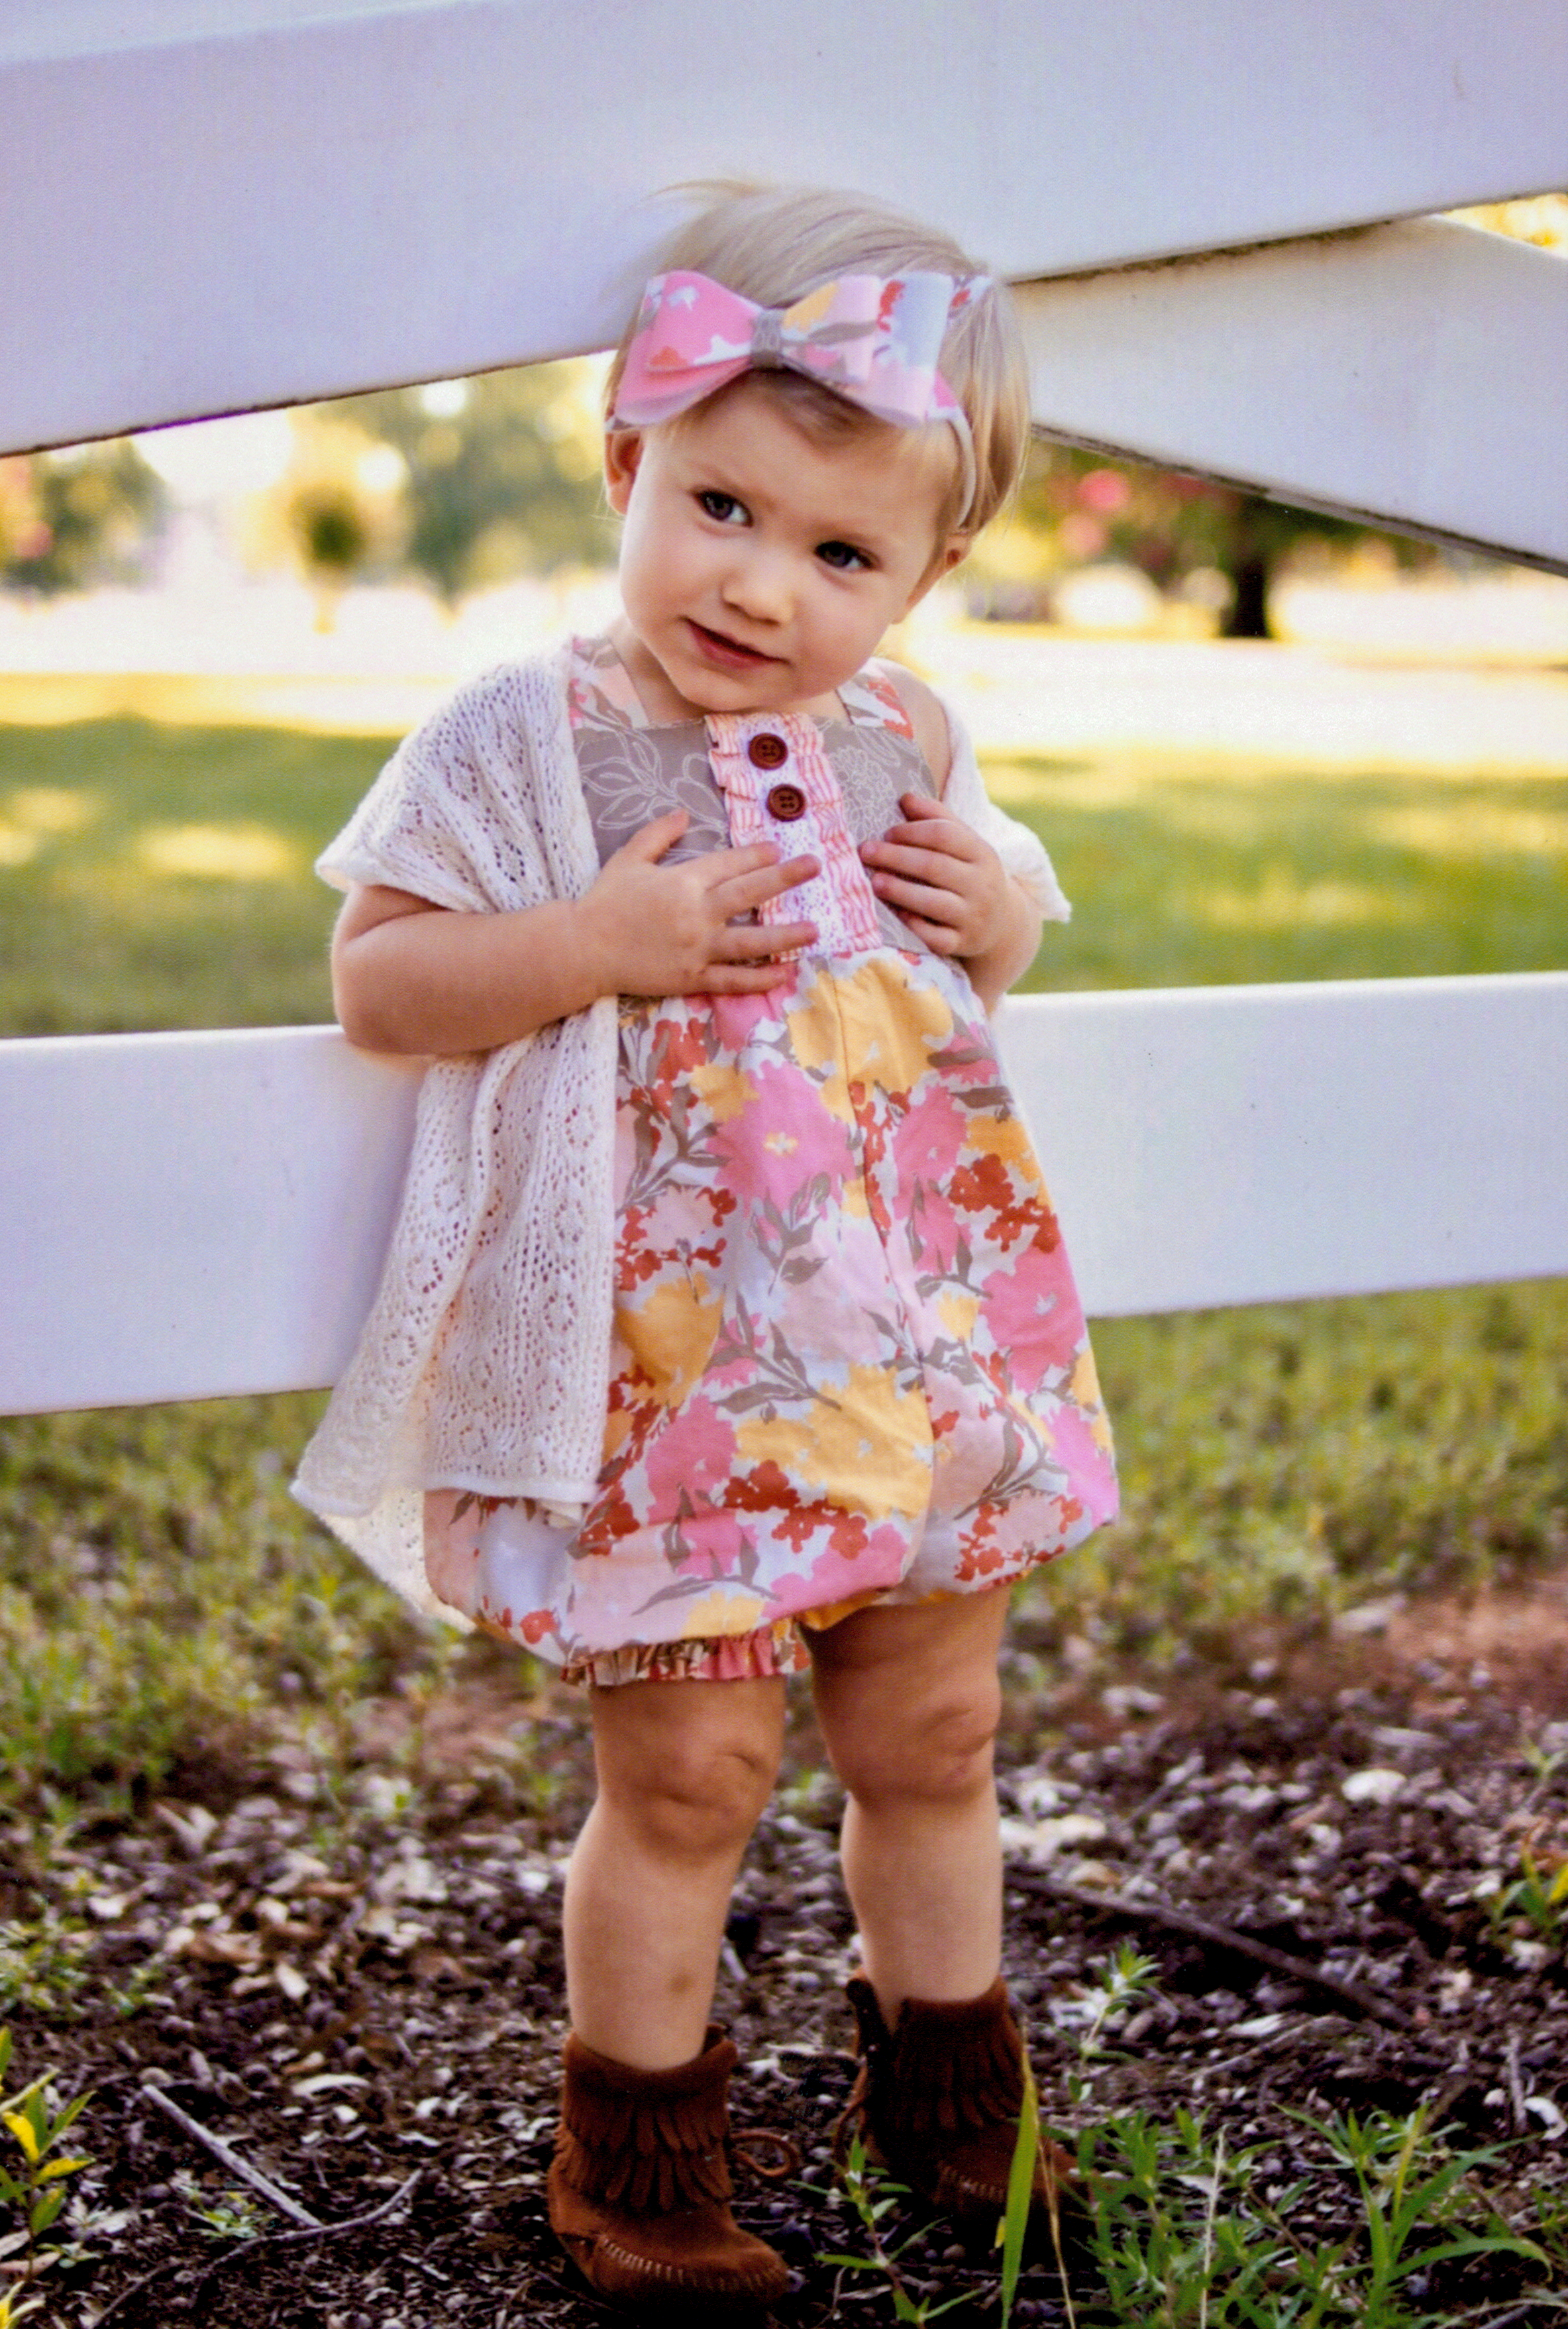 Addalyn. 2-years-old from Alma